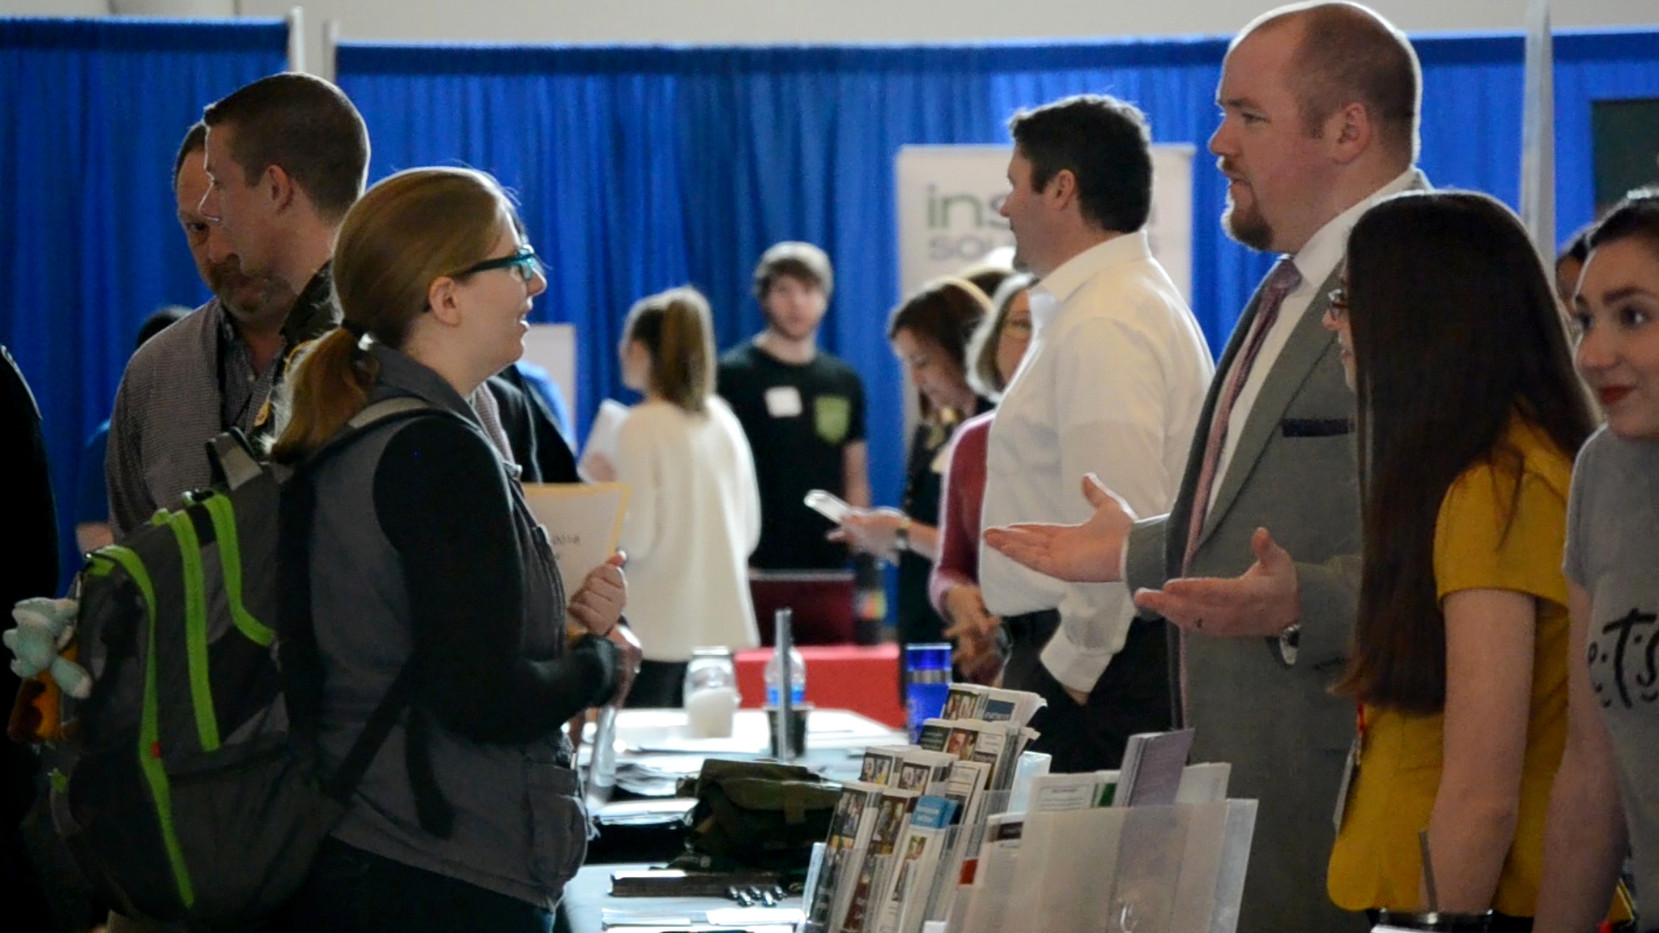 SUNY Plattsburgh Career Fair 2018